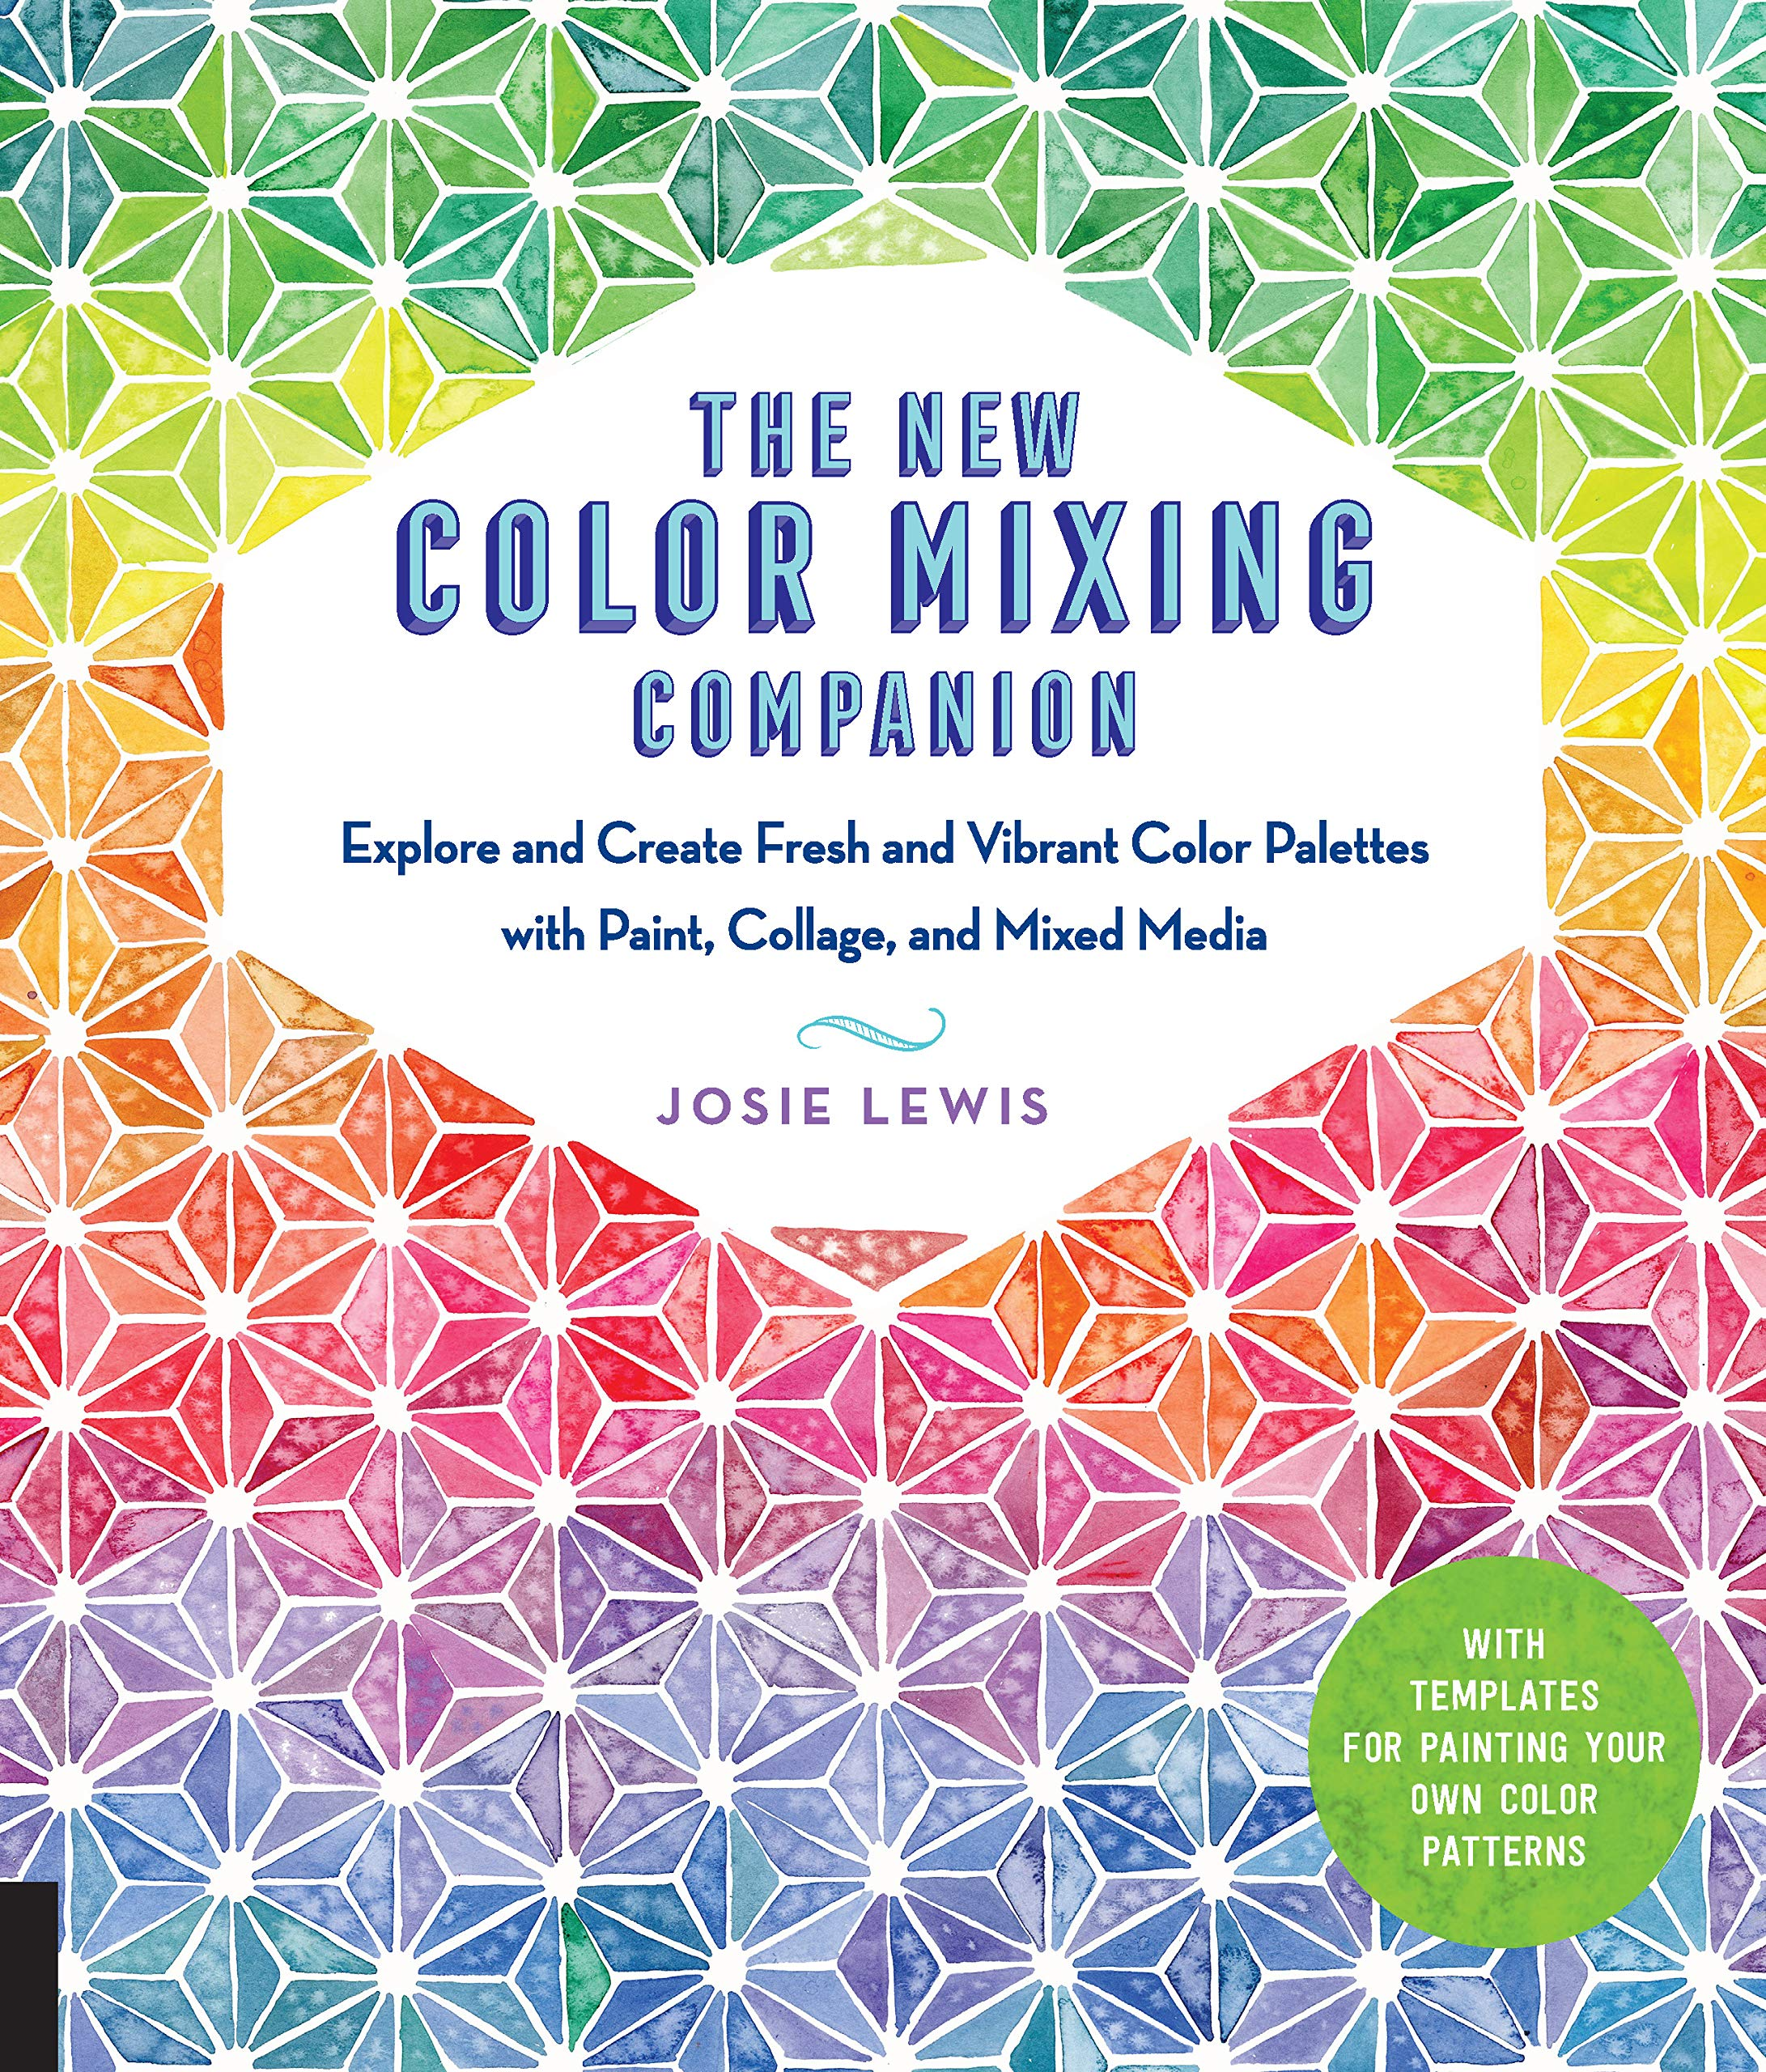 The New Color Mixing Companion: Explore and Create Fresh and Vibrant Color Palettes with Paint Collage and Mixed Media--With Templates for Painting Your Own Color Patterns